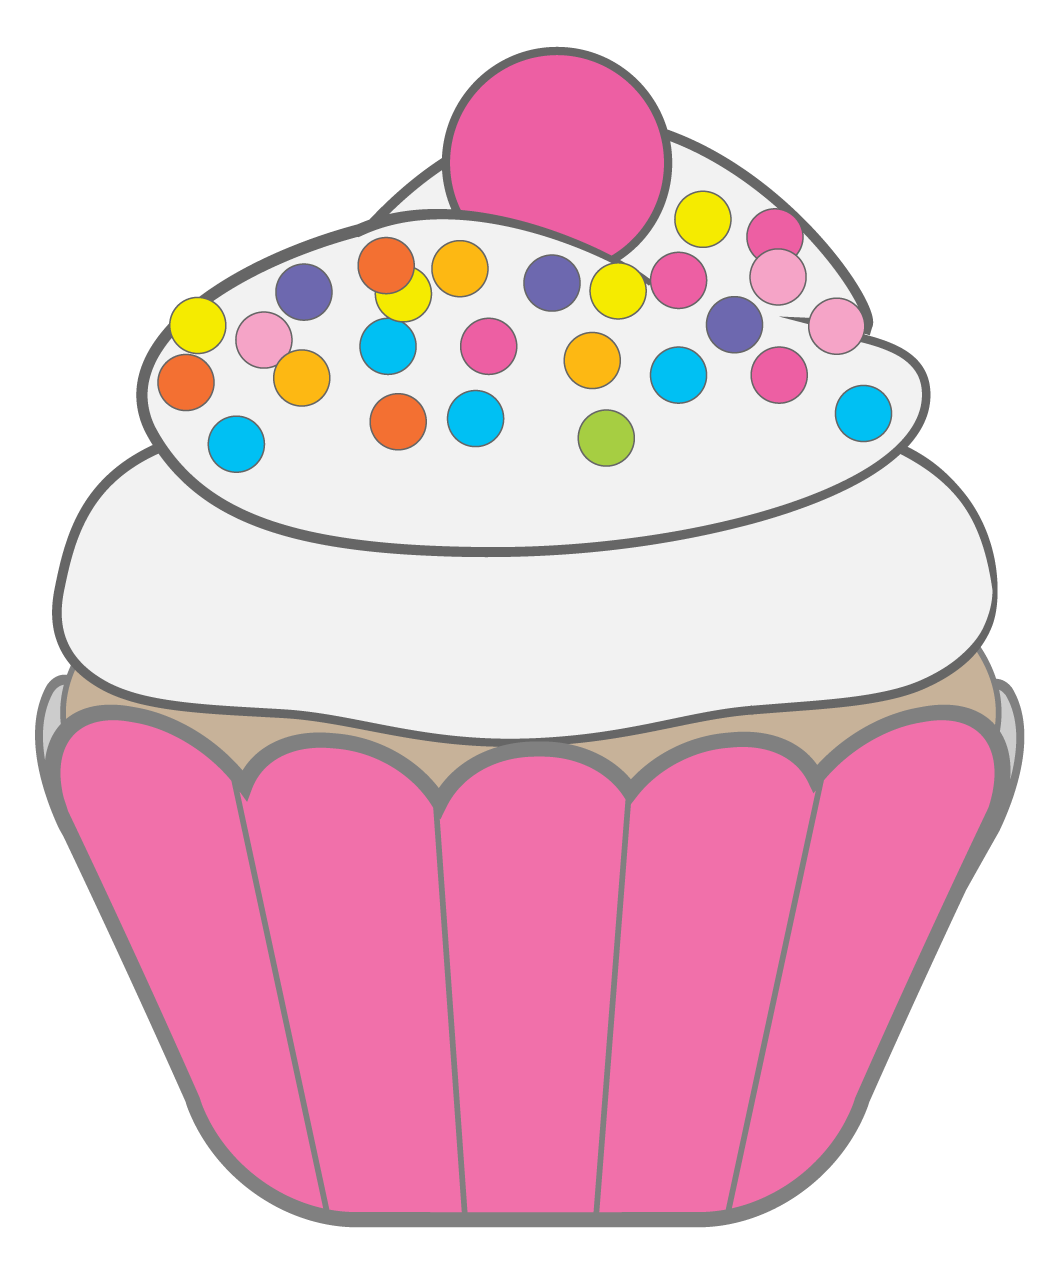 Birthday cake clip art free birthday cake clipart 2 clipartcow